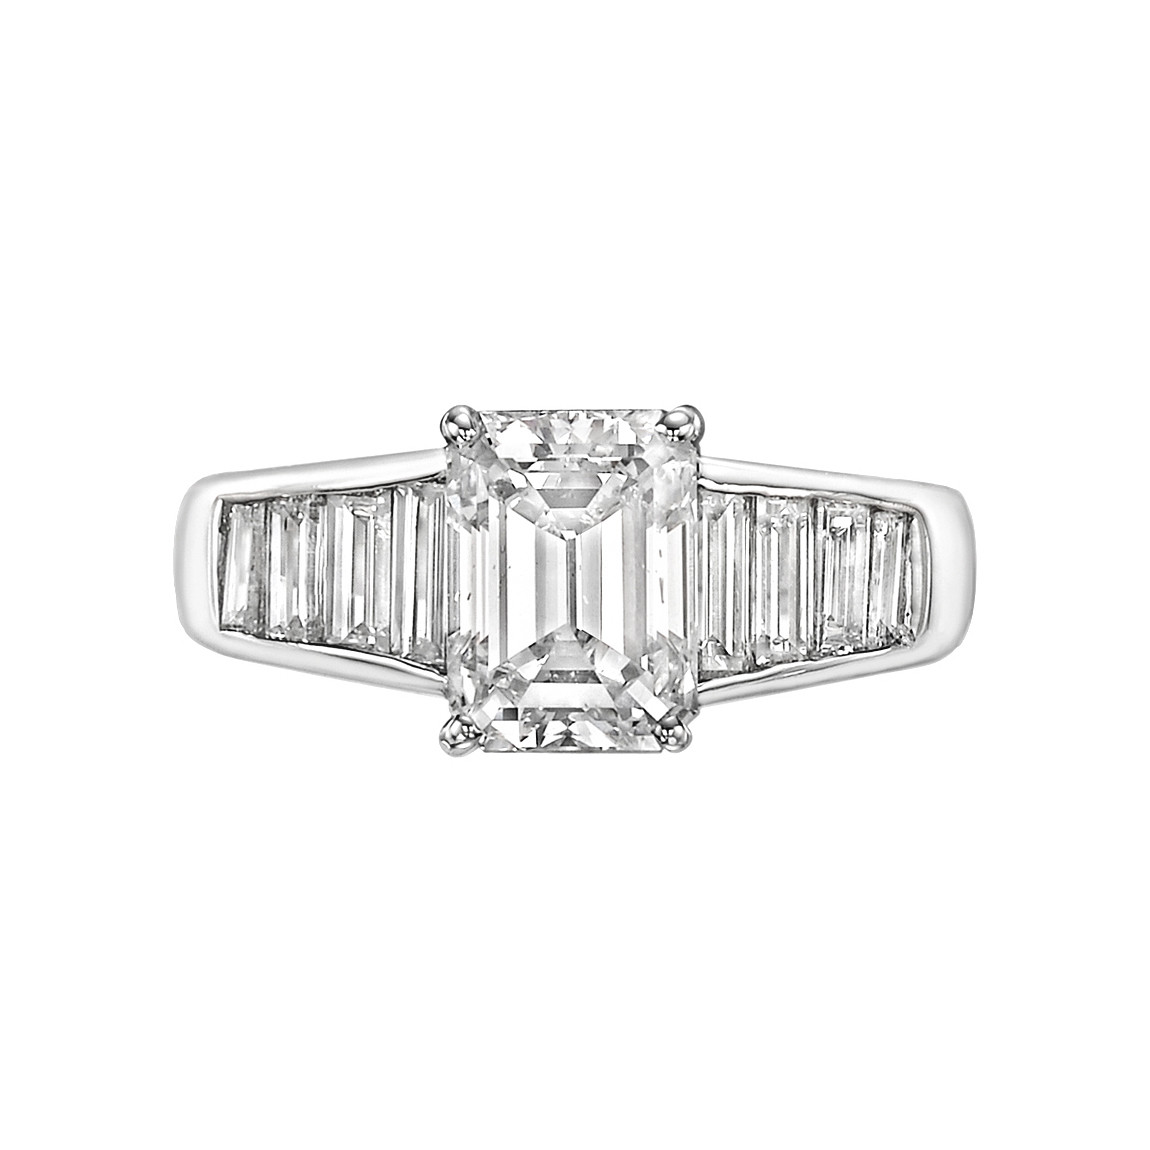 2.02 Carat Emerald-Cut Diamond Ring